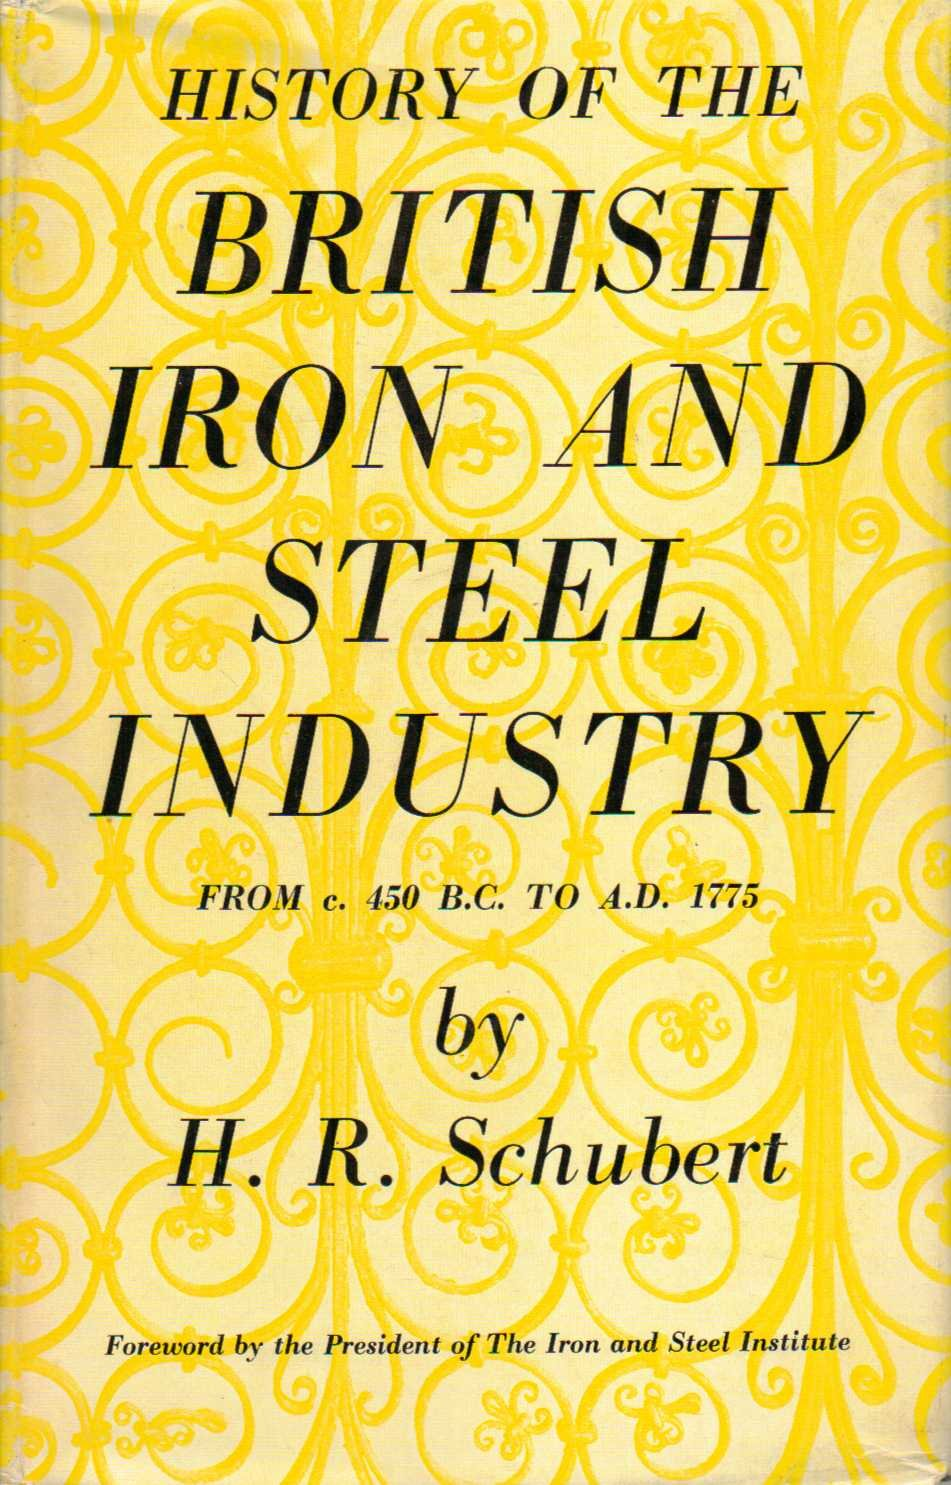 History of the British Iron and Steel Industry